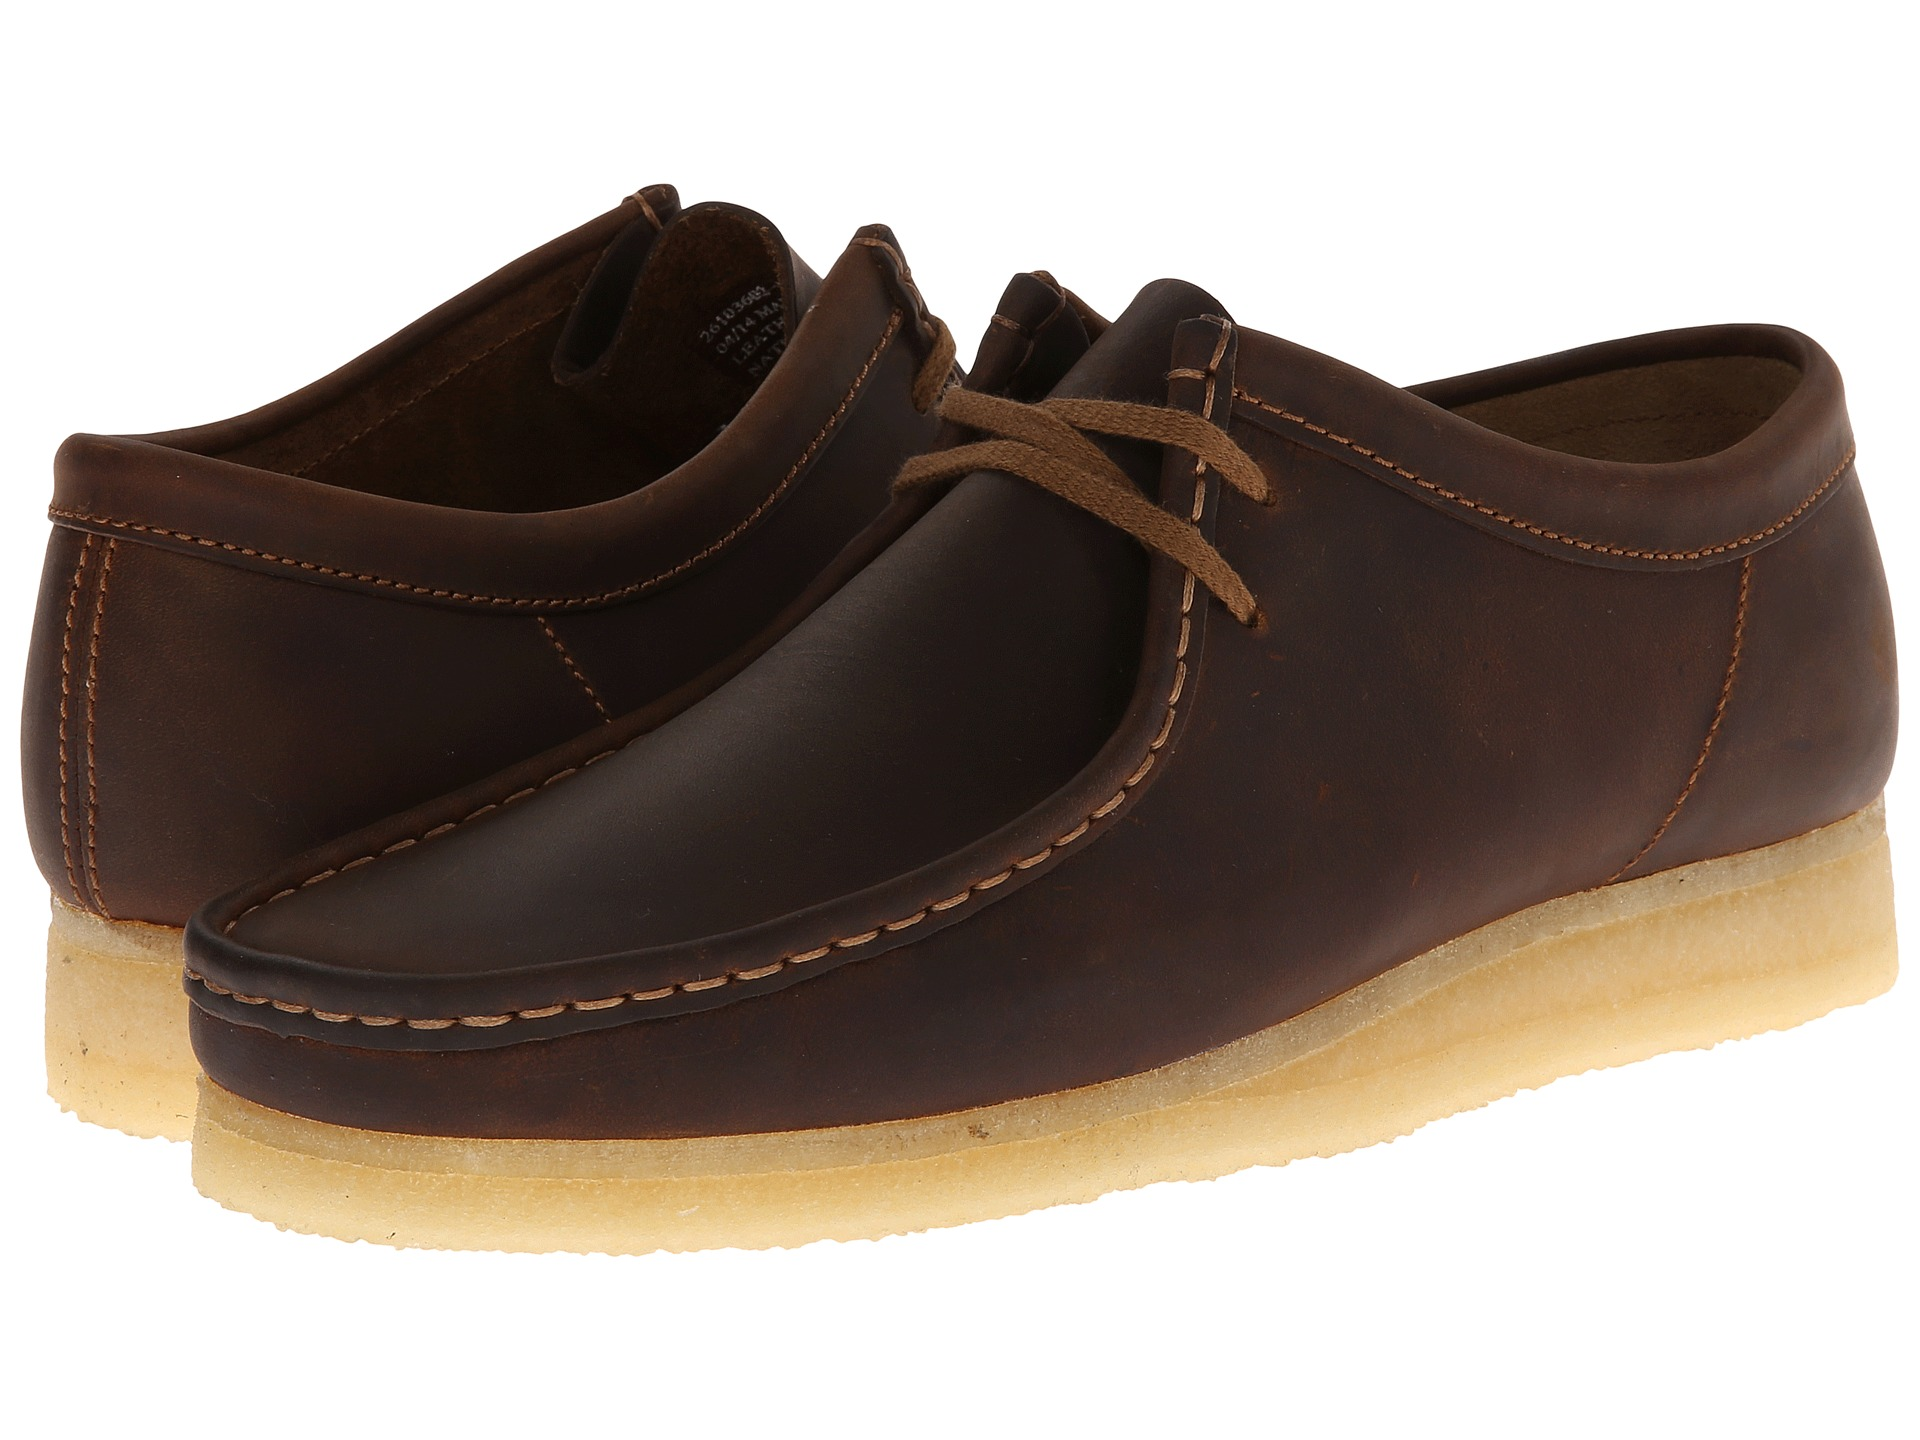 Clarks Wallabee Zappos Com Free Shipping Both Ways